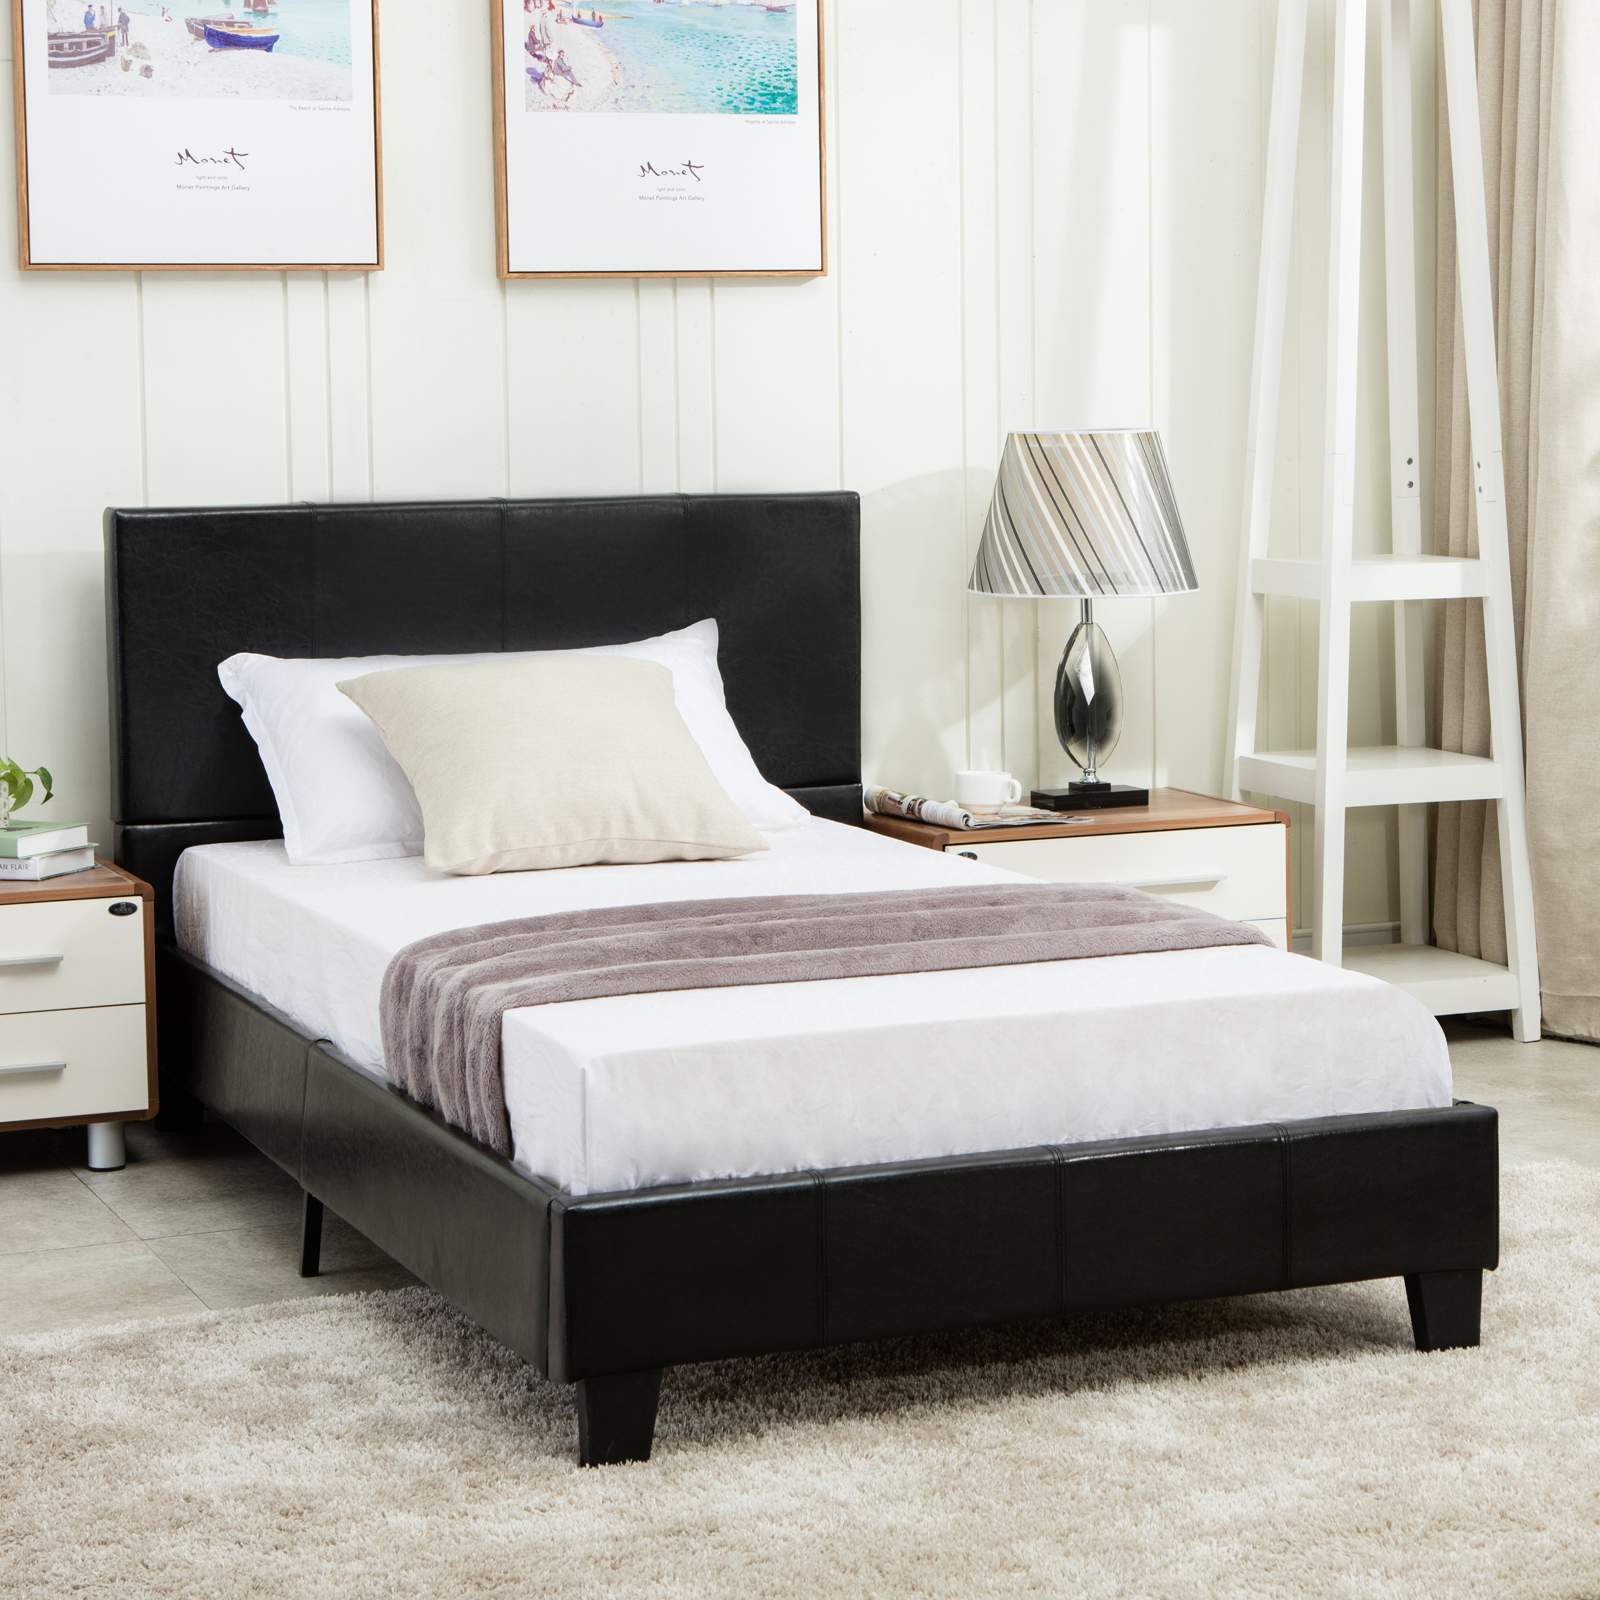 Twin Size Faux Leather Platform Bed Frame & Slats